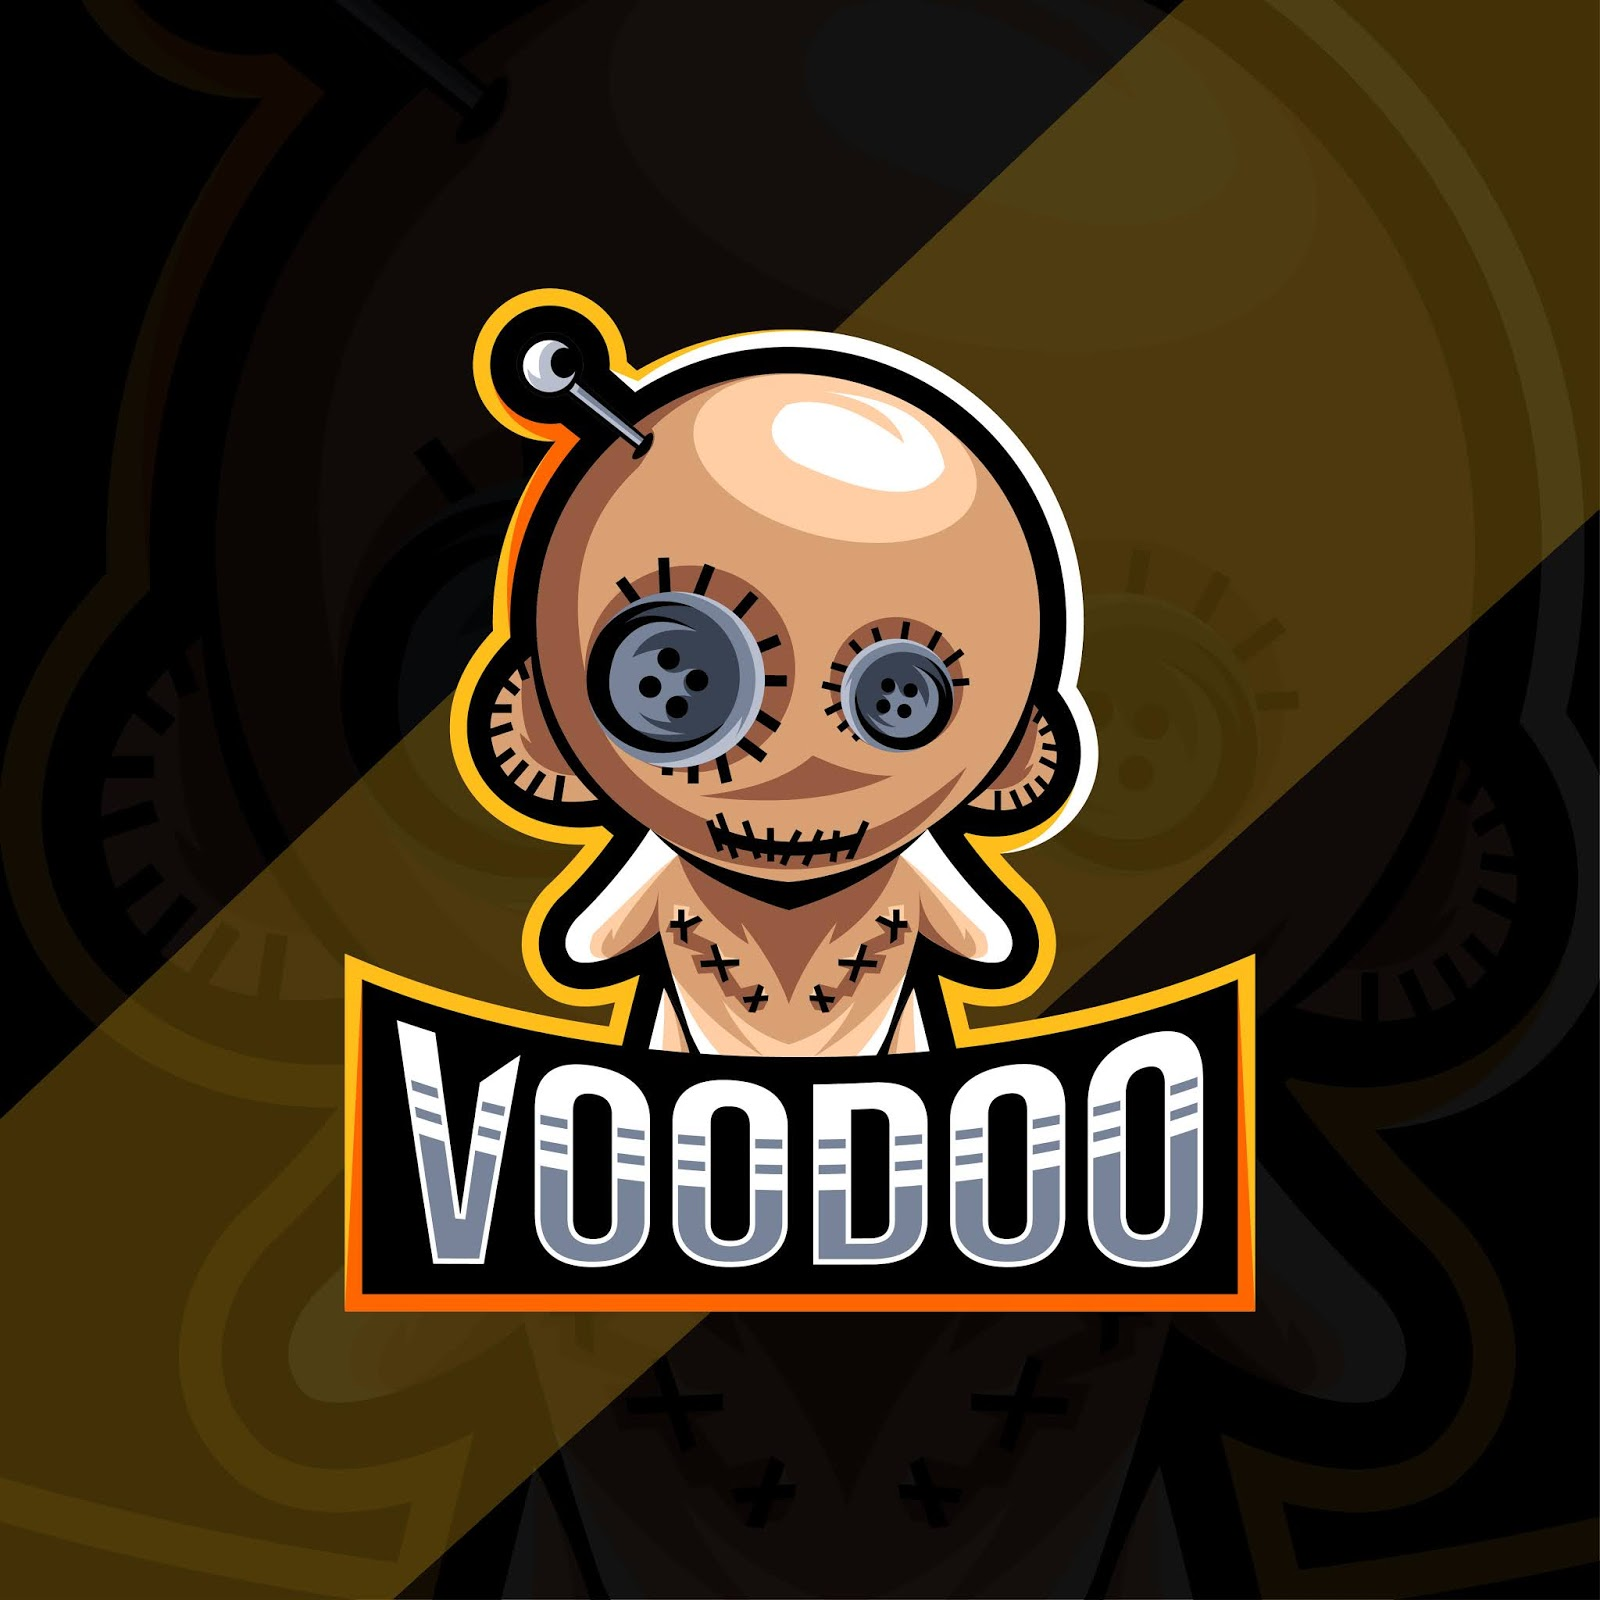 Voodoo Mascot Logo Esport Template Free Download Vector CDR, AI, EPS and PNG Formats